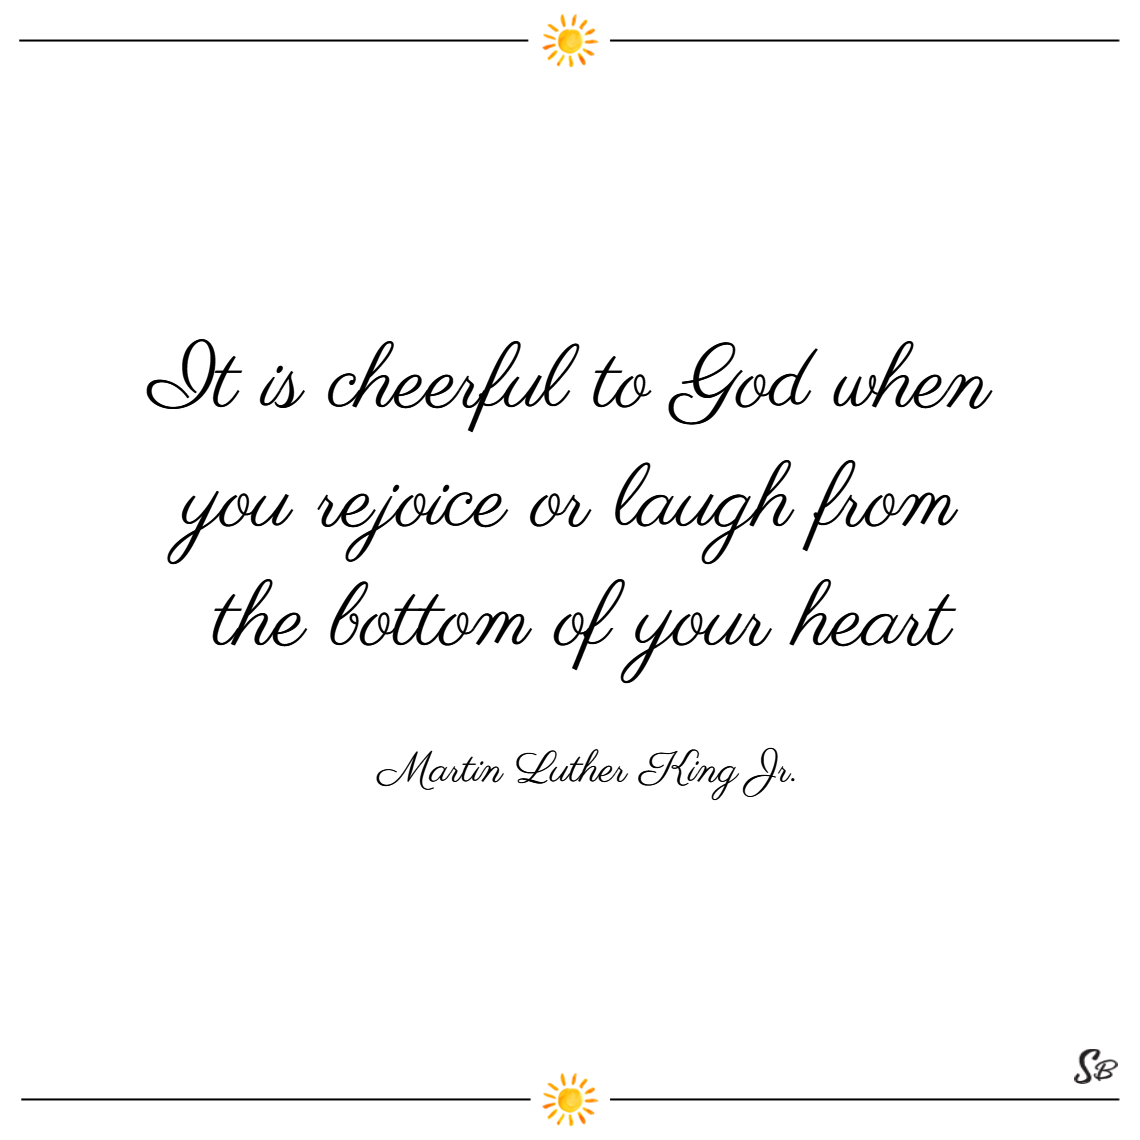 It is cheerful to god when you rejoice or laugh from the bottom of your heart. – martin luther king jr.